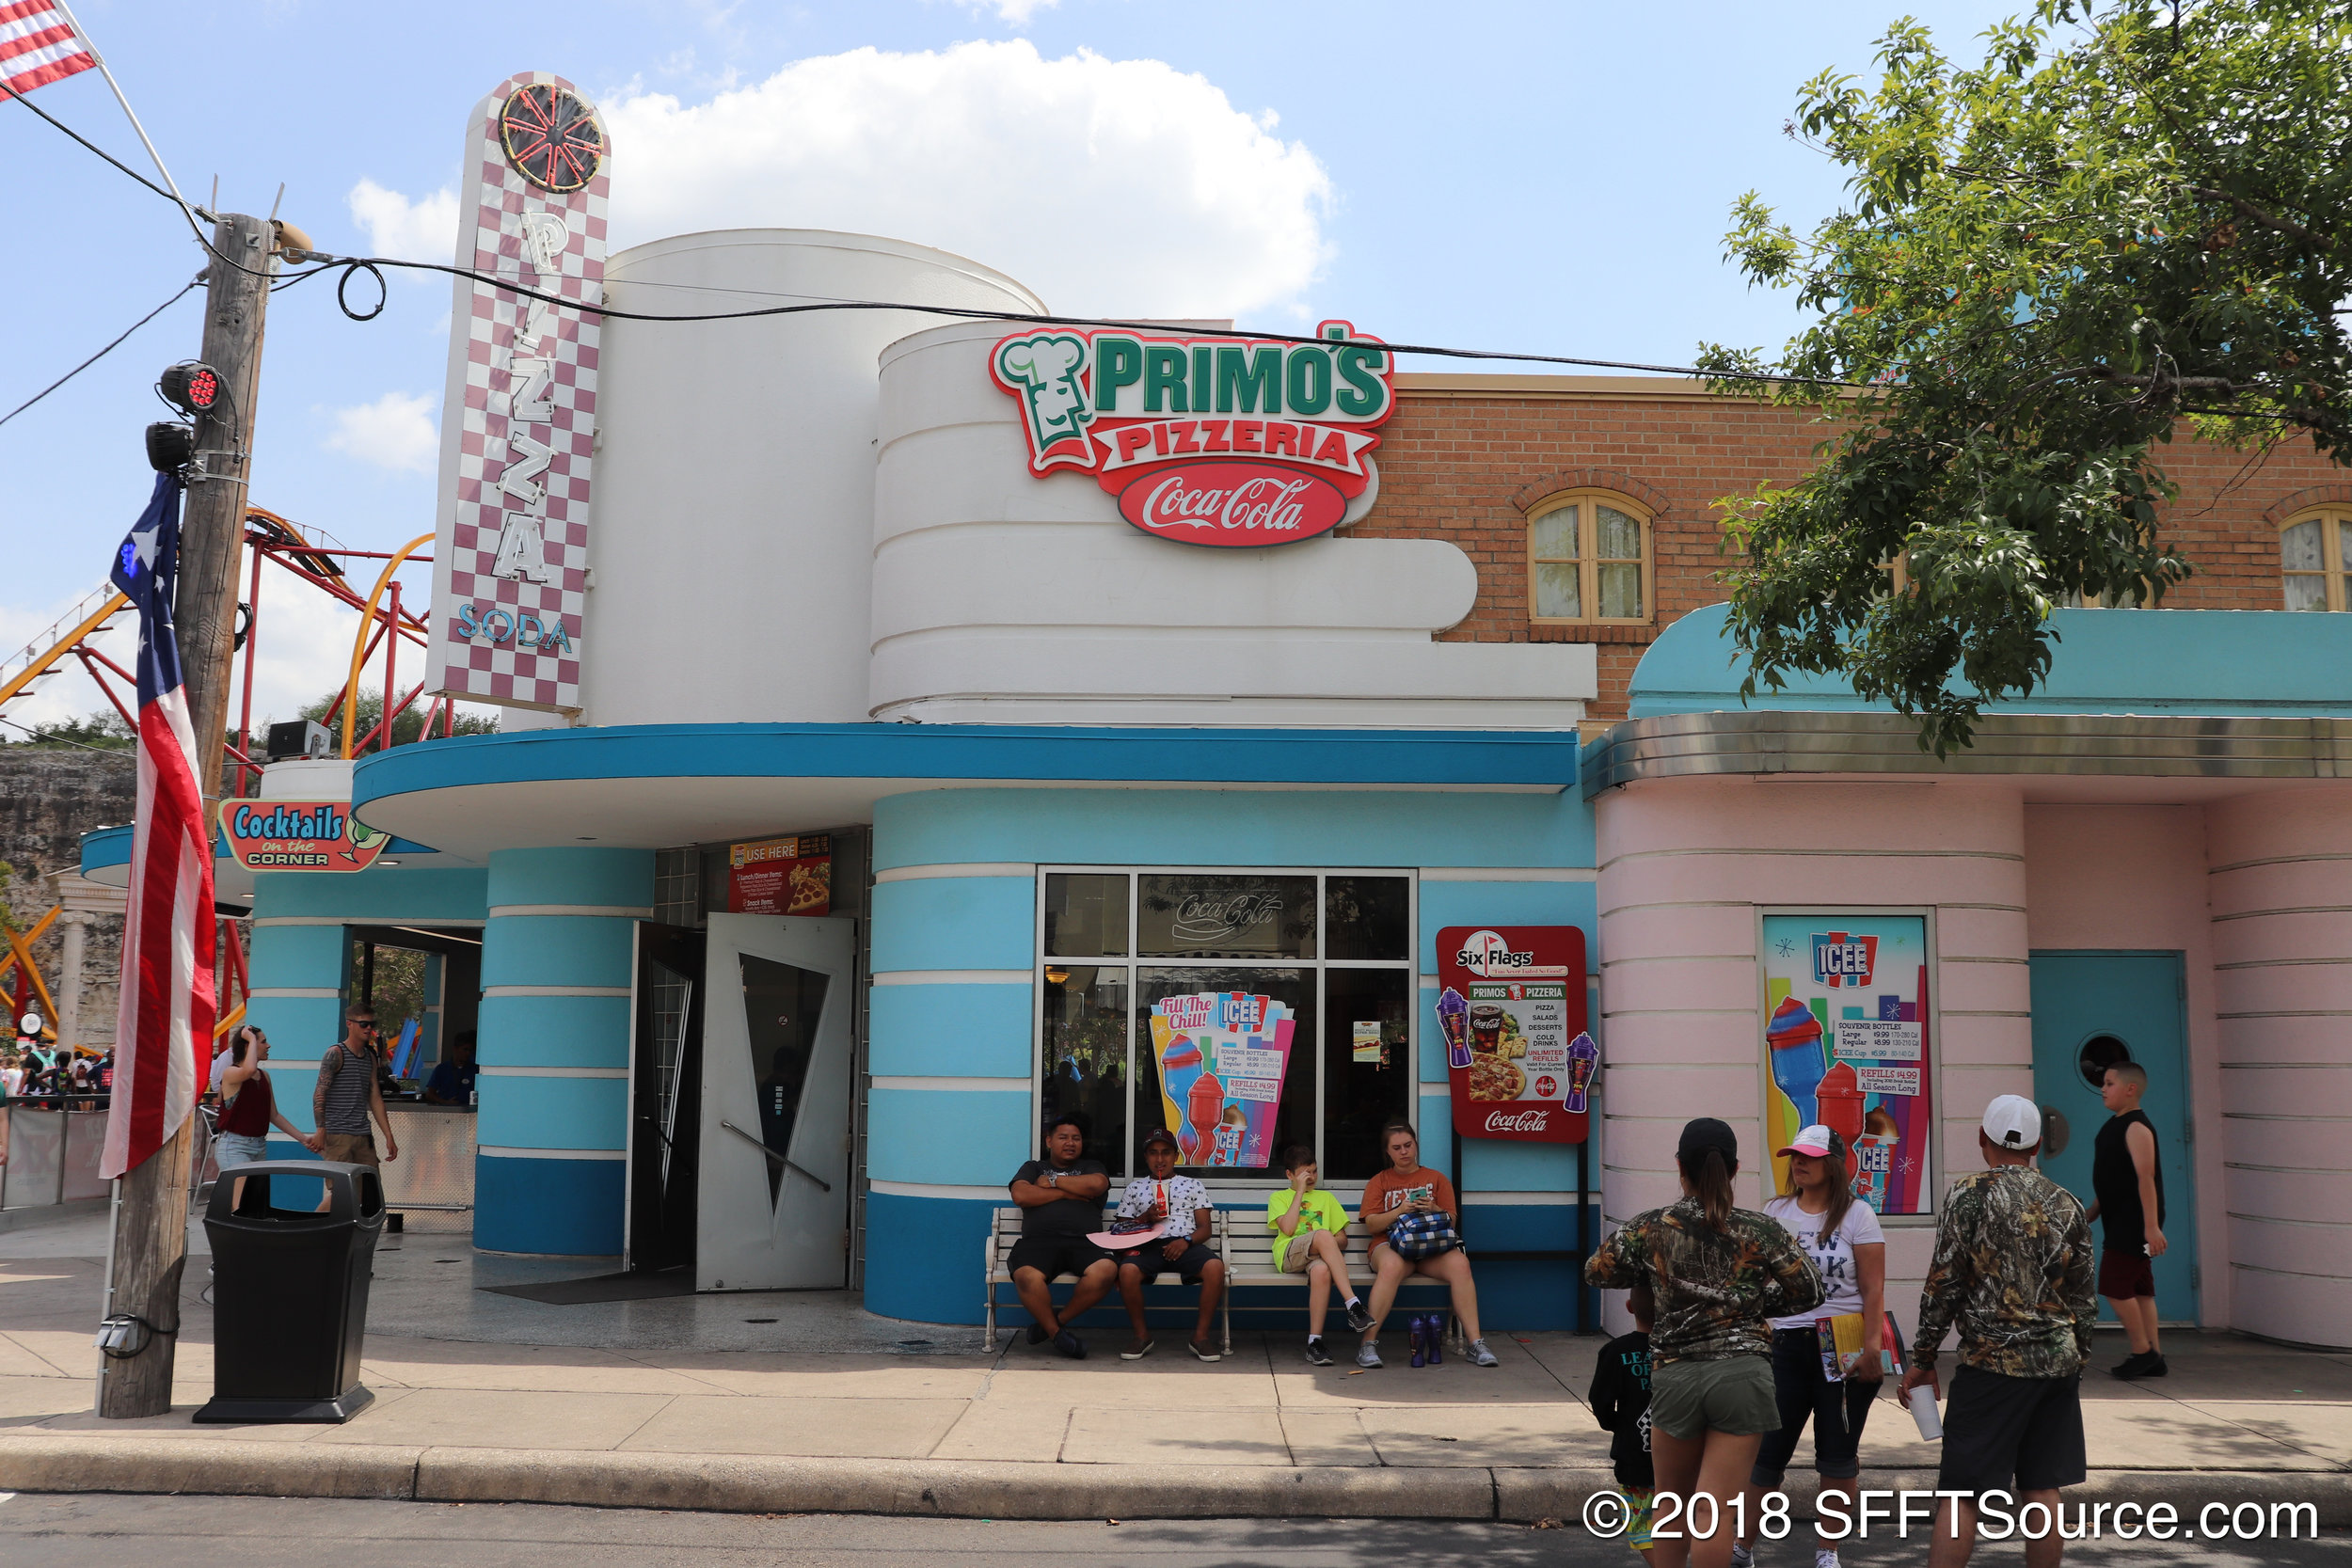 Another look at the exterior of Primo's Pizzeria.